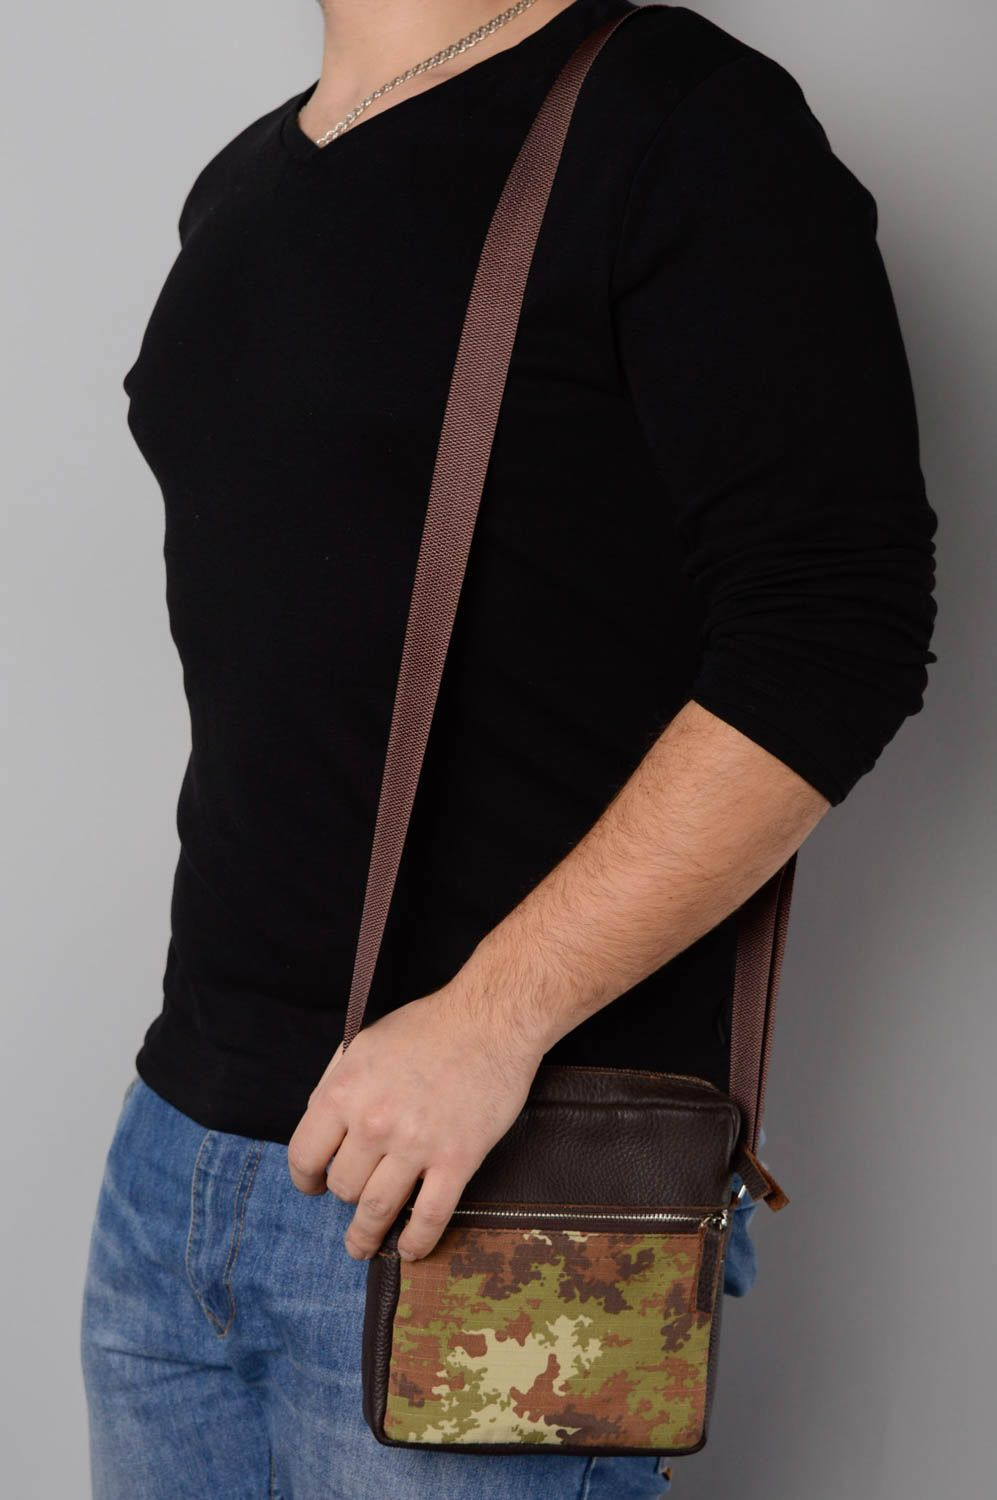 Men's Bags Men's shoulder bag - MADEheart.com